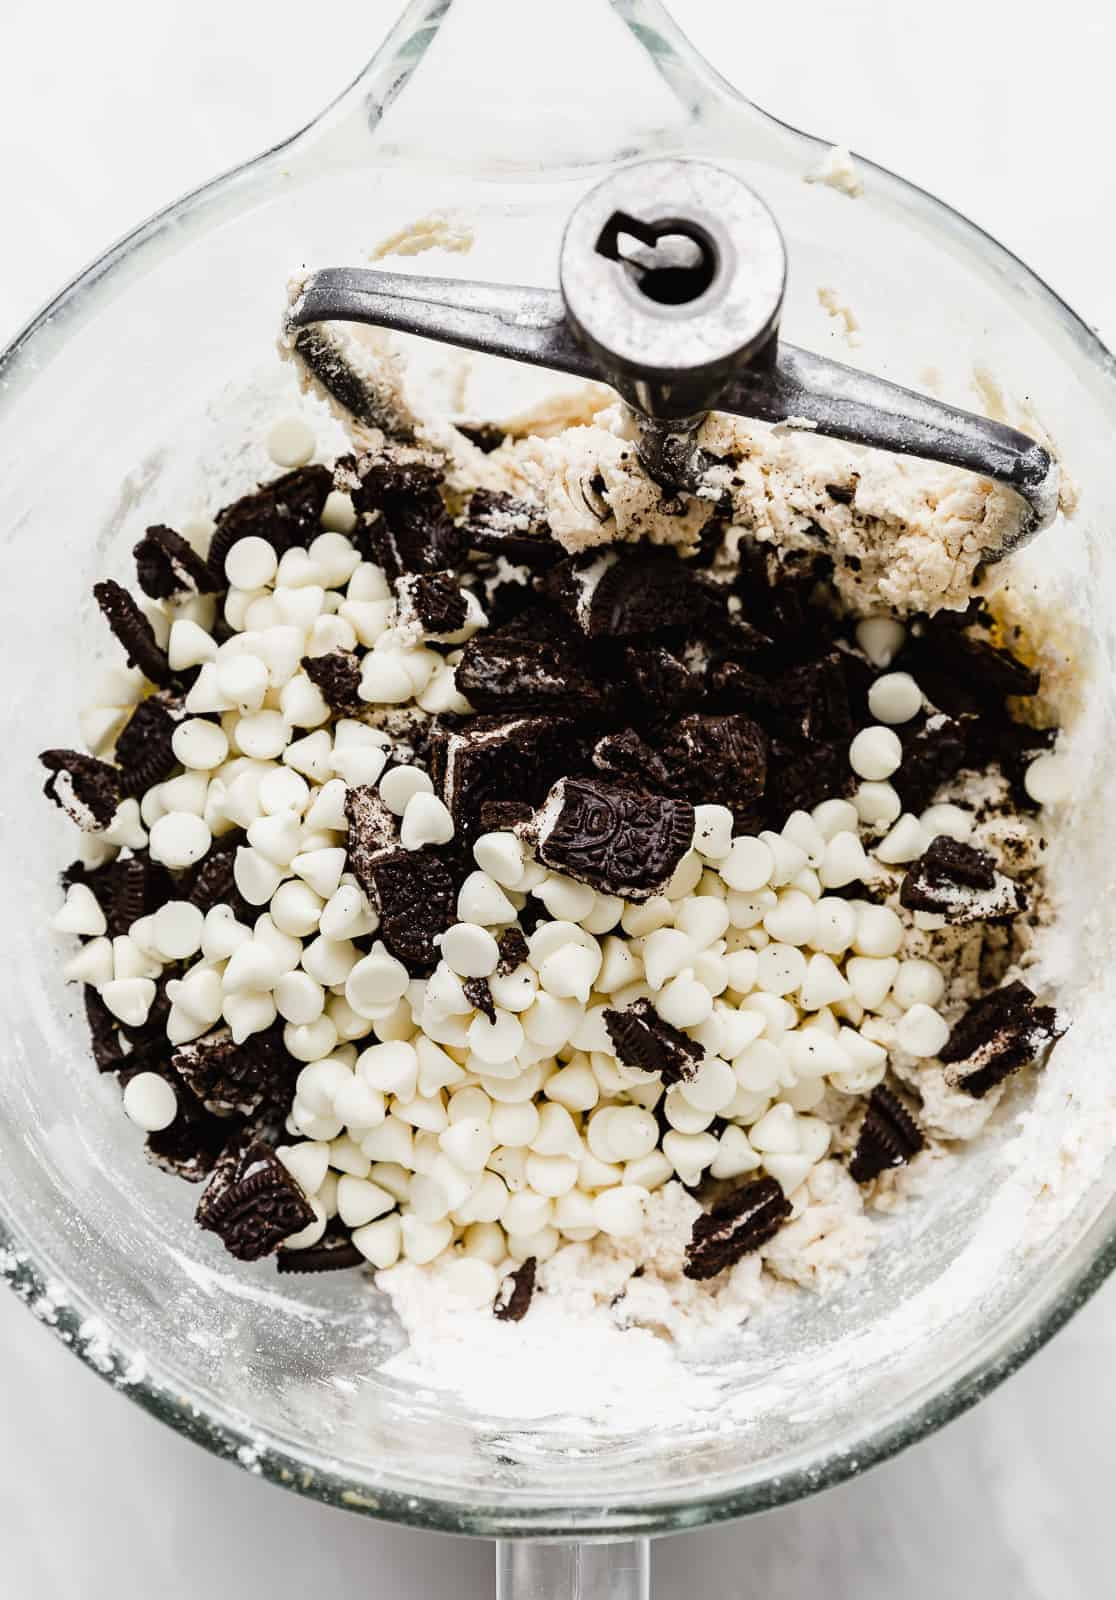 A large glass bowl full of Cookies and Cream Cookie dough batter with white chocolate chips and chopped Oreo's on top.